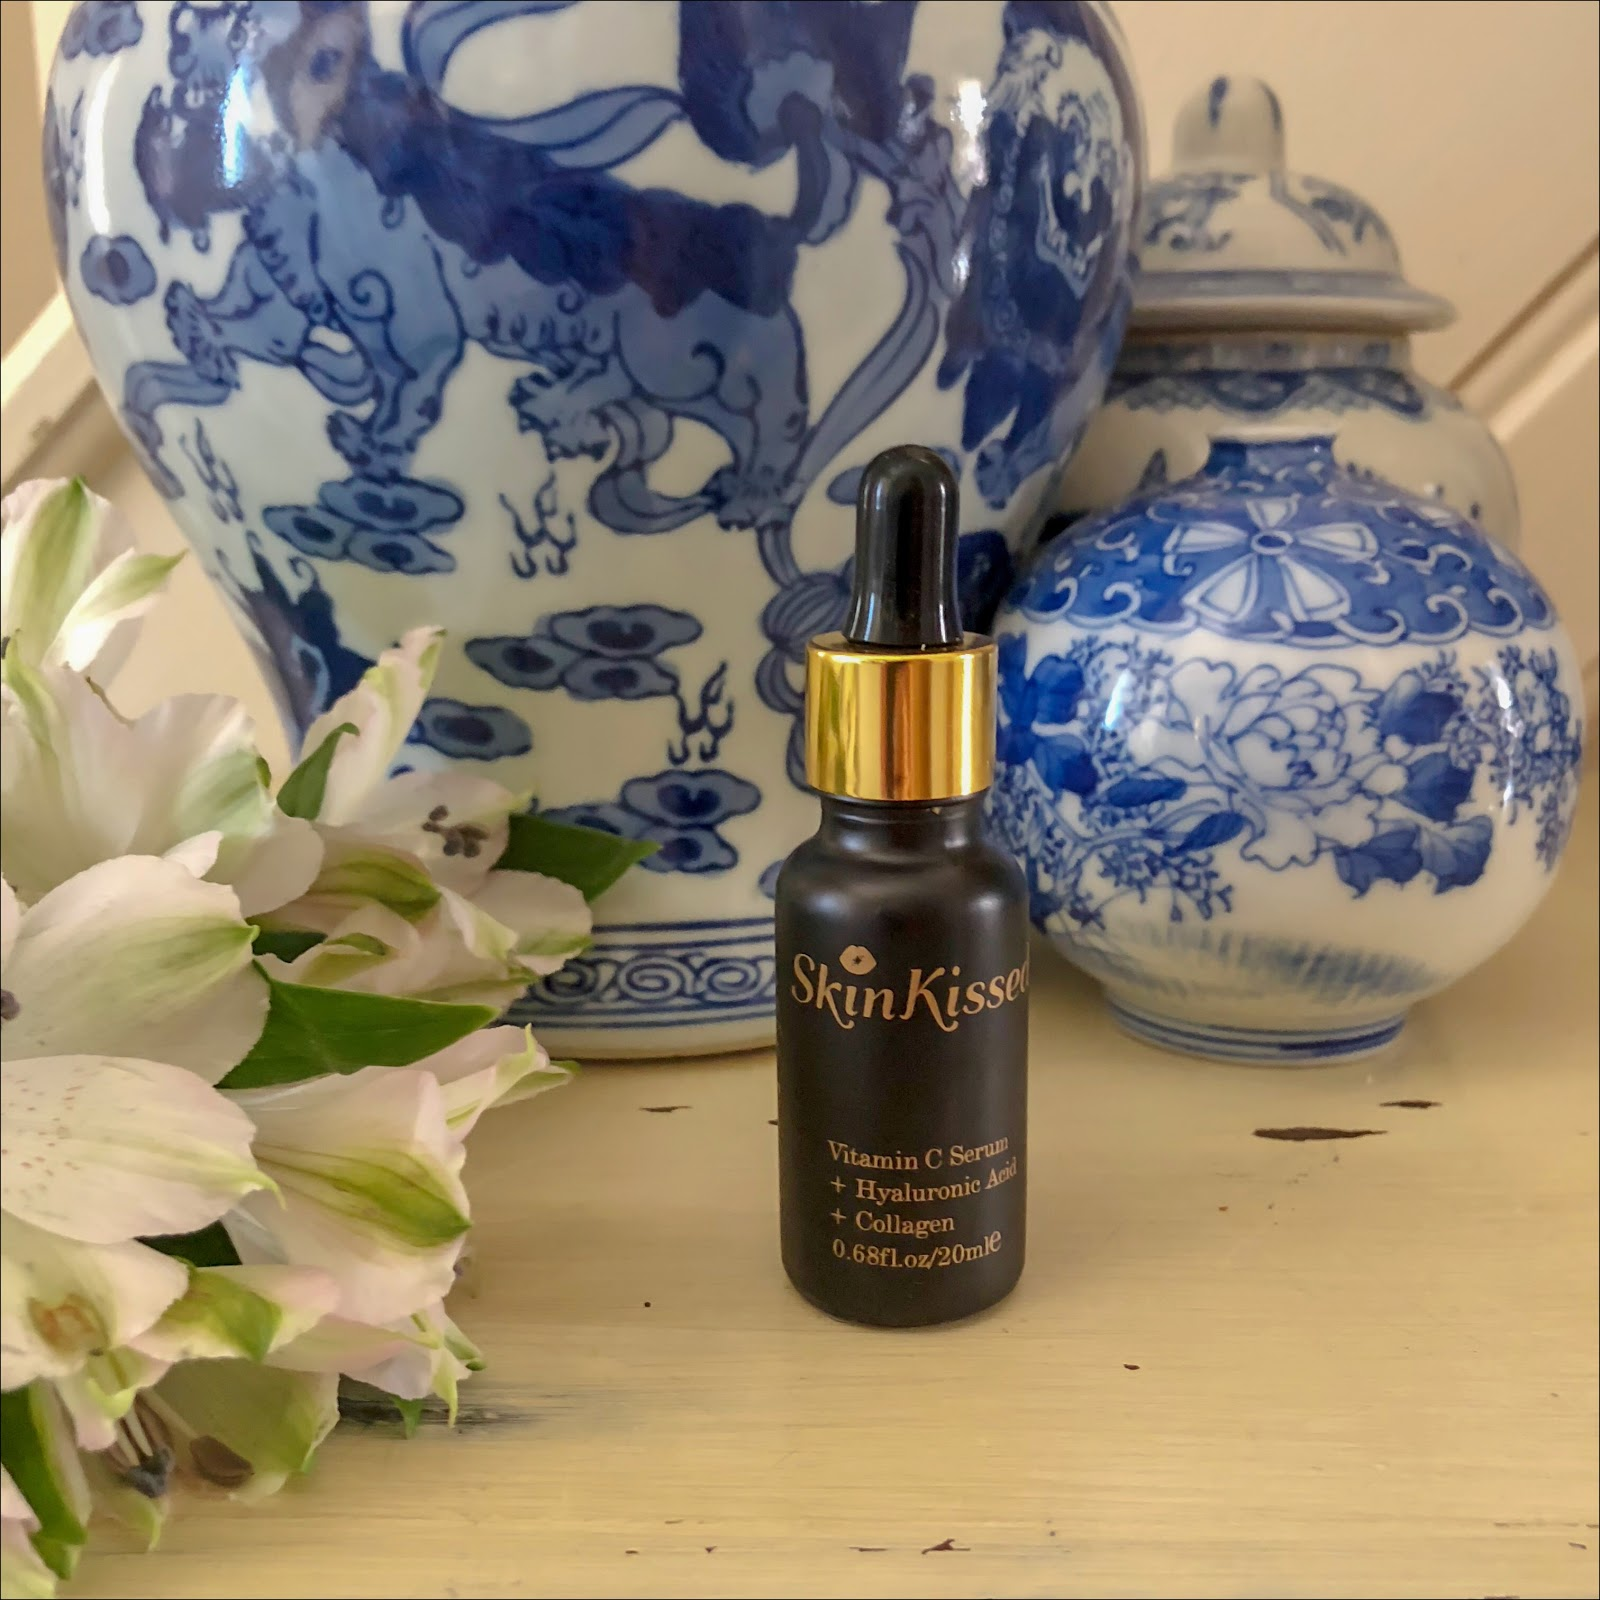 my midlife fashion, skinkissed vitamin c serum